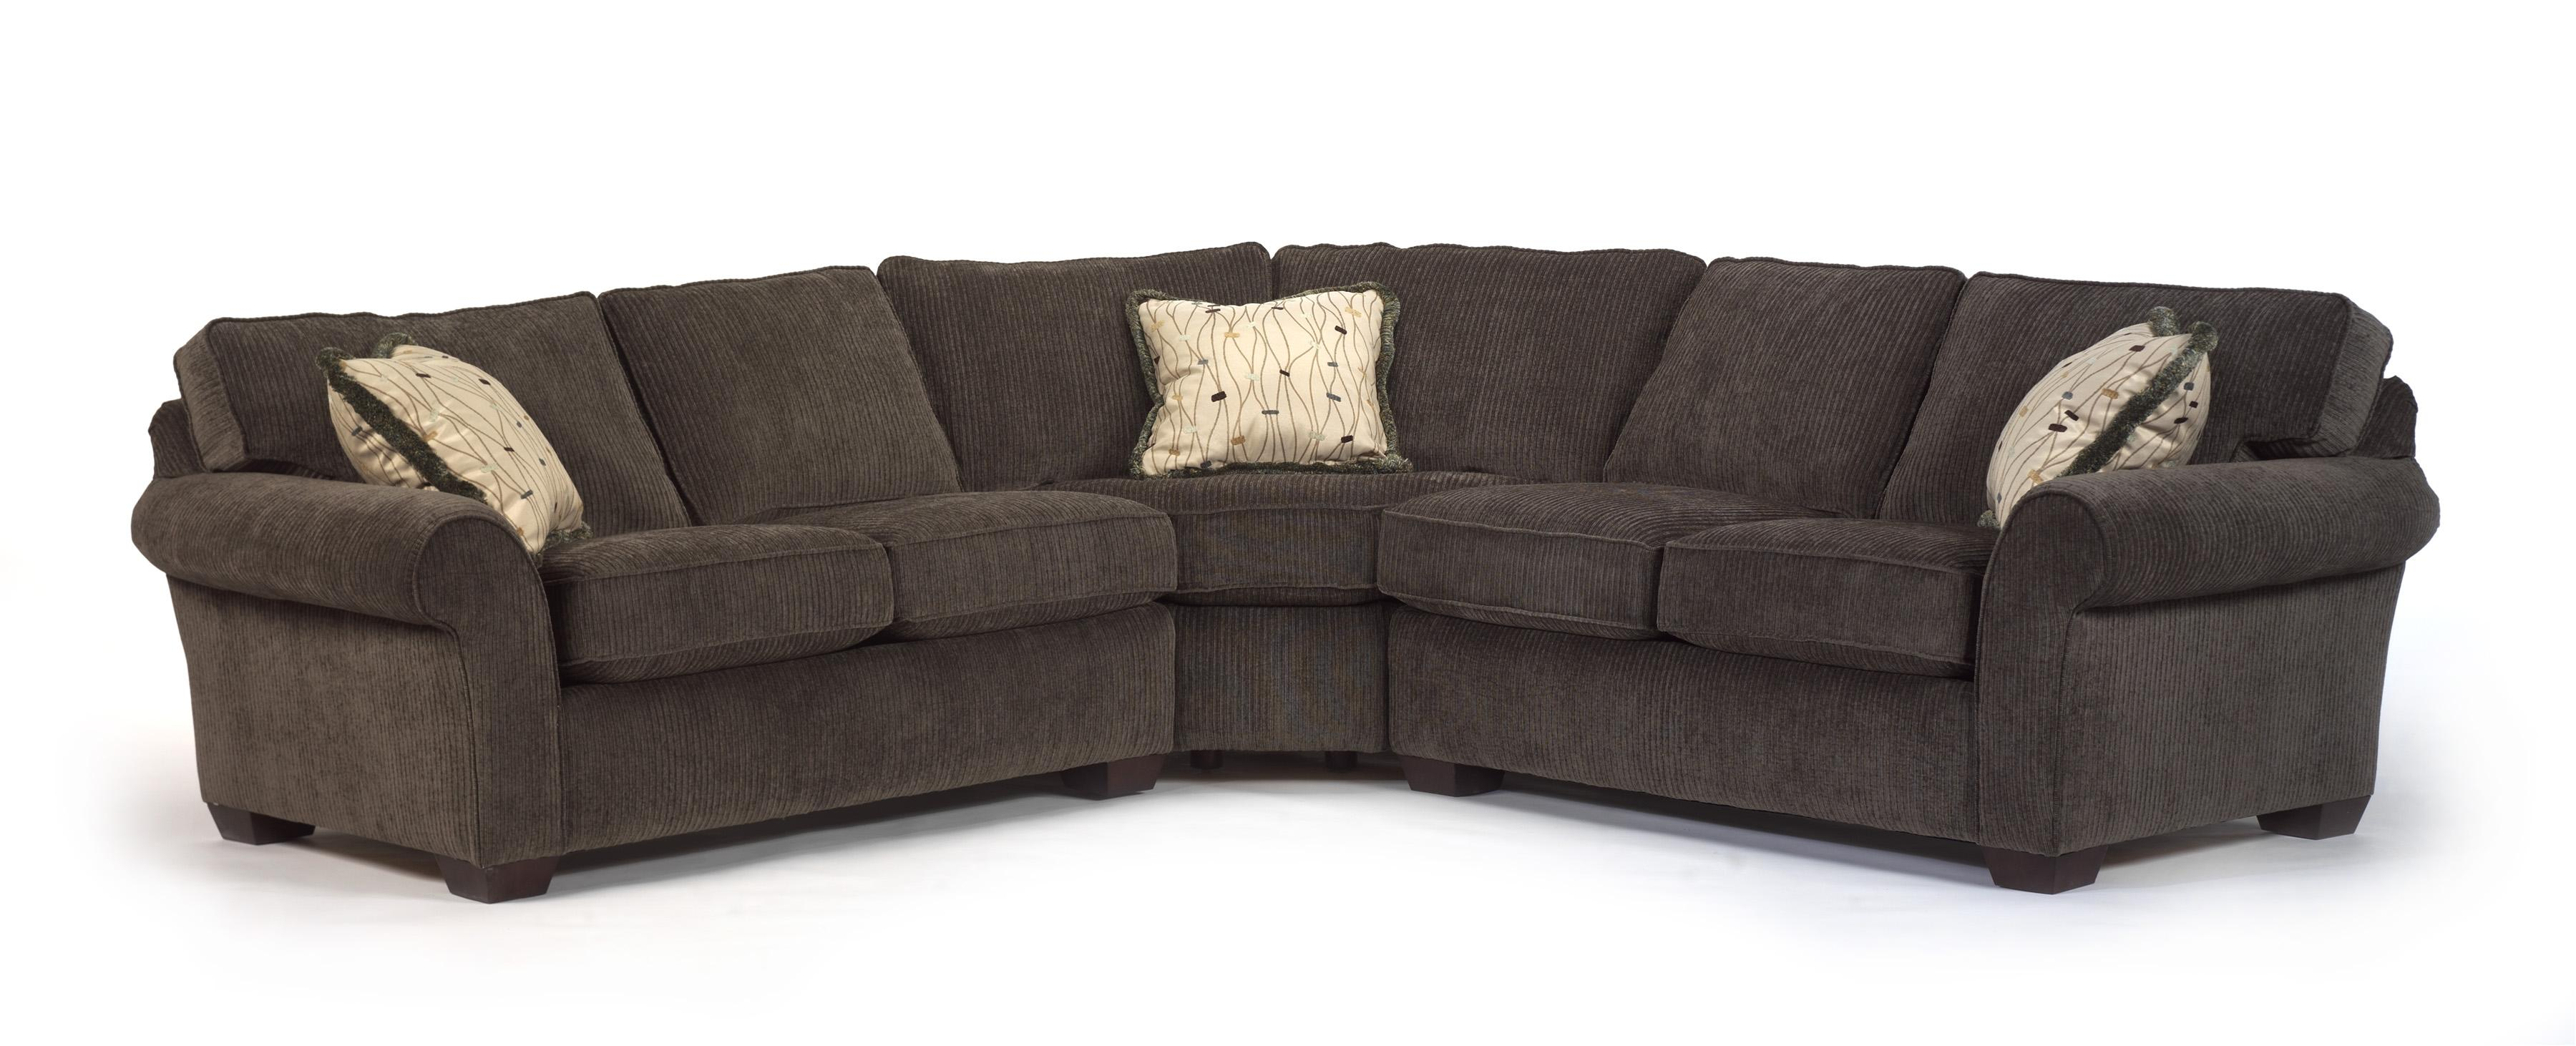 Flexsteel Vail Corner Sectional Sofa Wayside Furniture Sofa